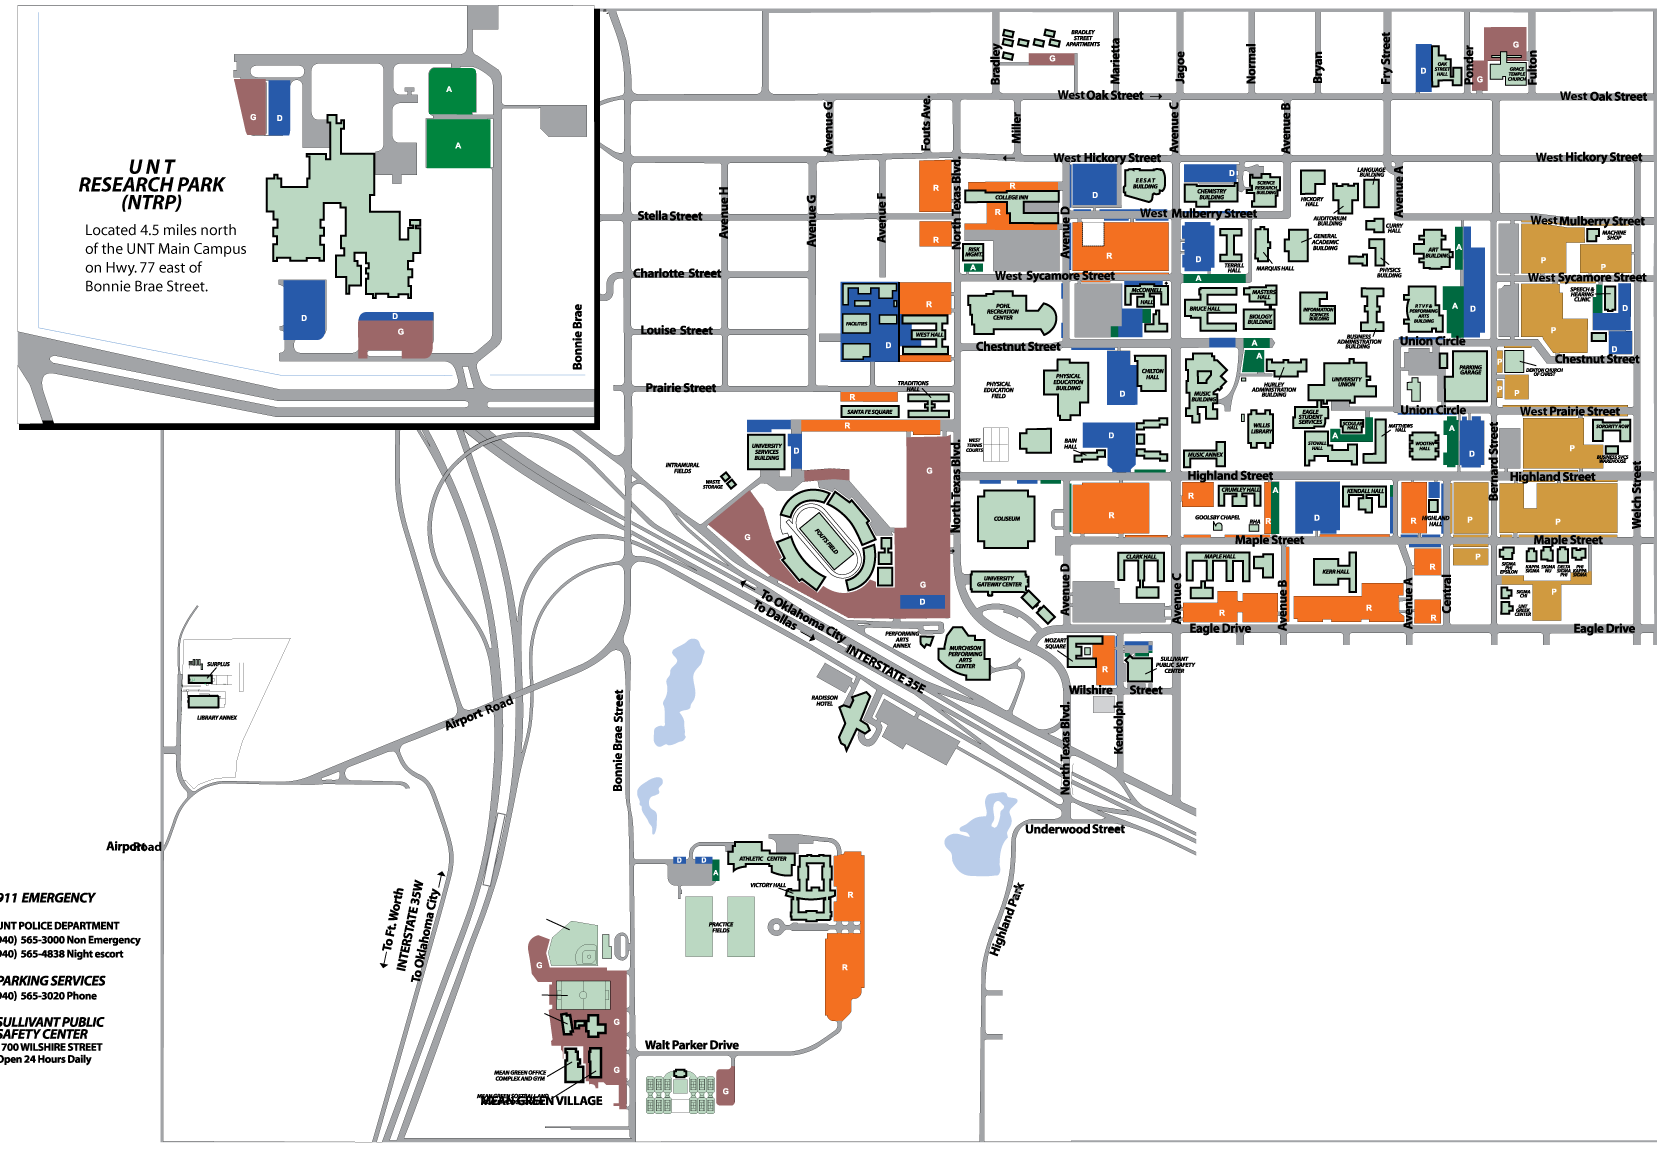 university of north texas research park ntrp map   n texas blvd dentontx  • mappery. university of north texas research park ntrp map   n texas